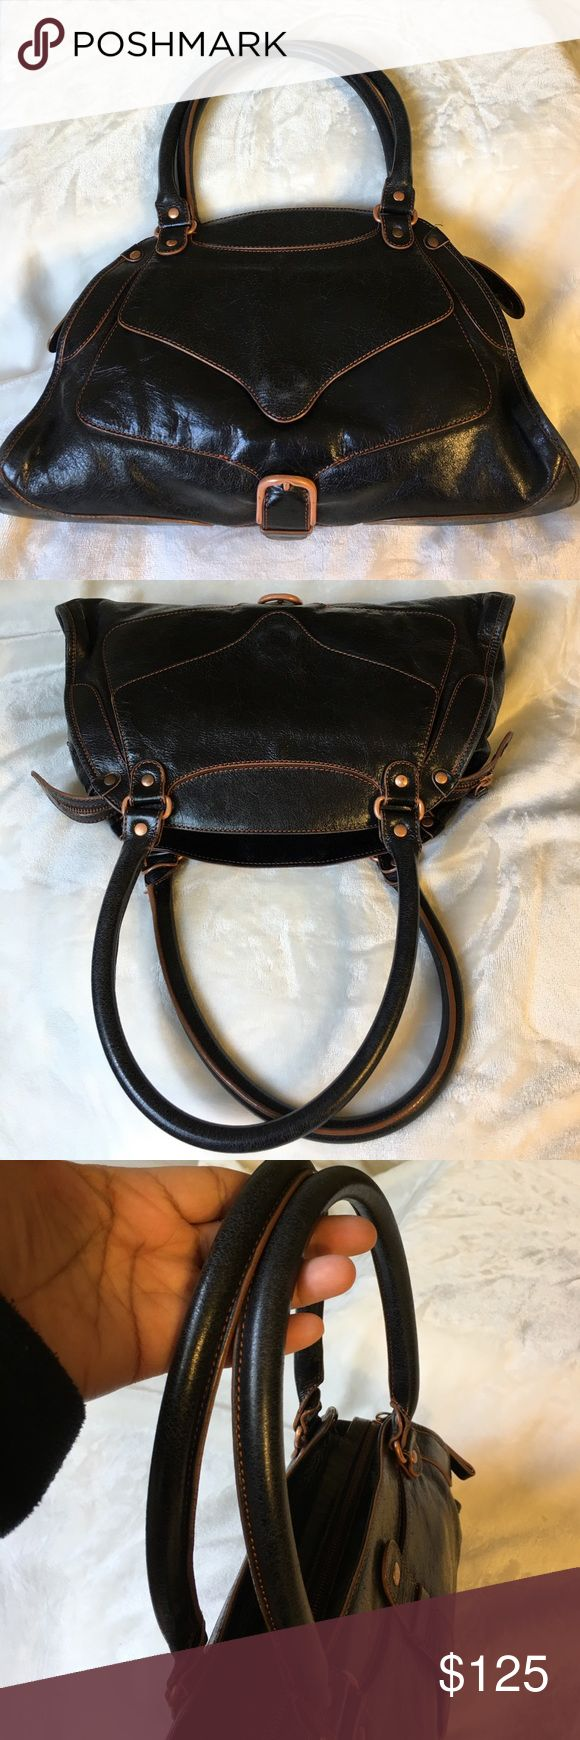 Sigerson Morrison leather satchel handbag Sigerson Morrison leather satchel handbag, made in Italy, lightly used, excellent condition, smoke free home Sigerson Morrison Bags Satchels